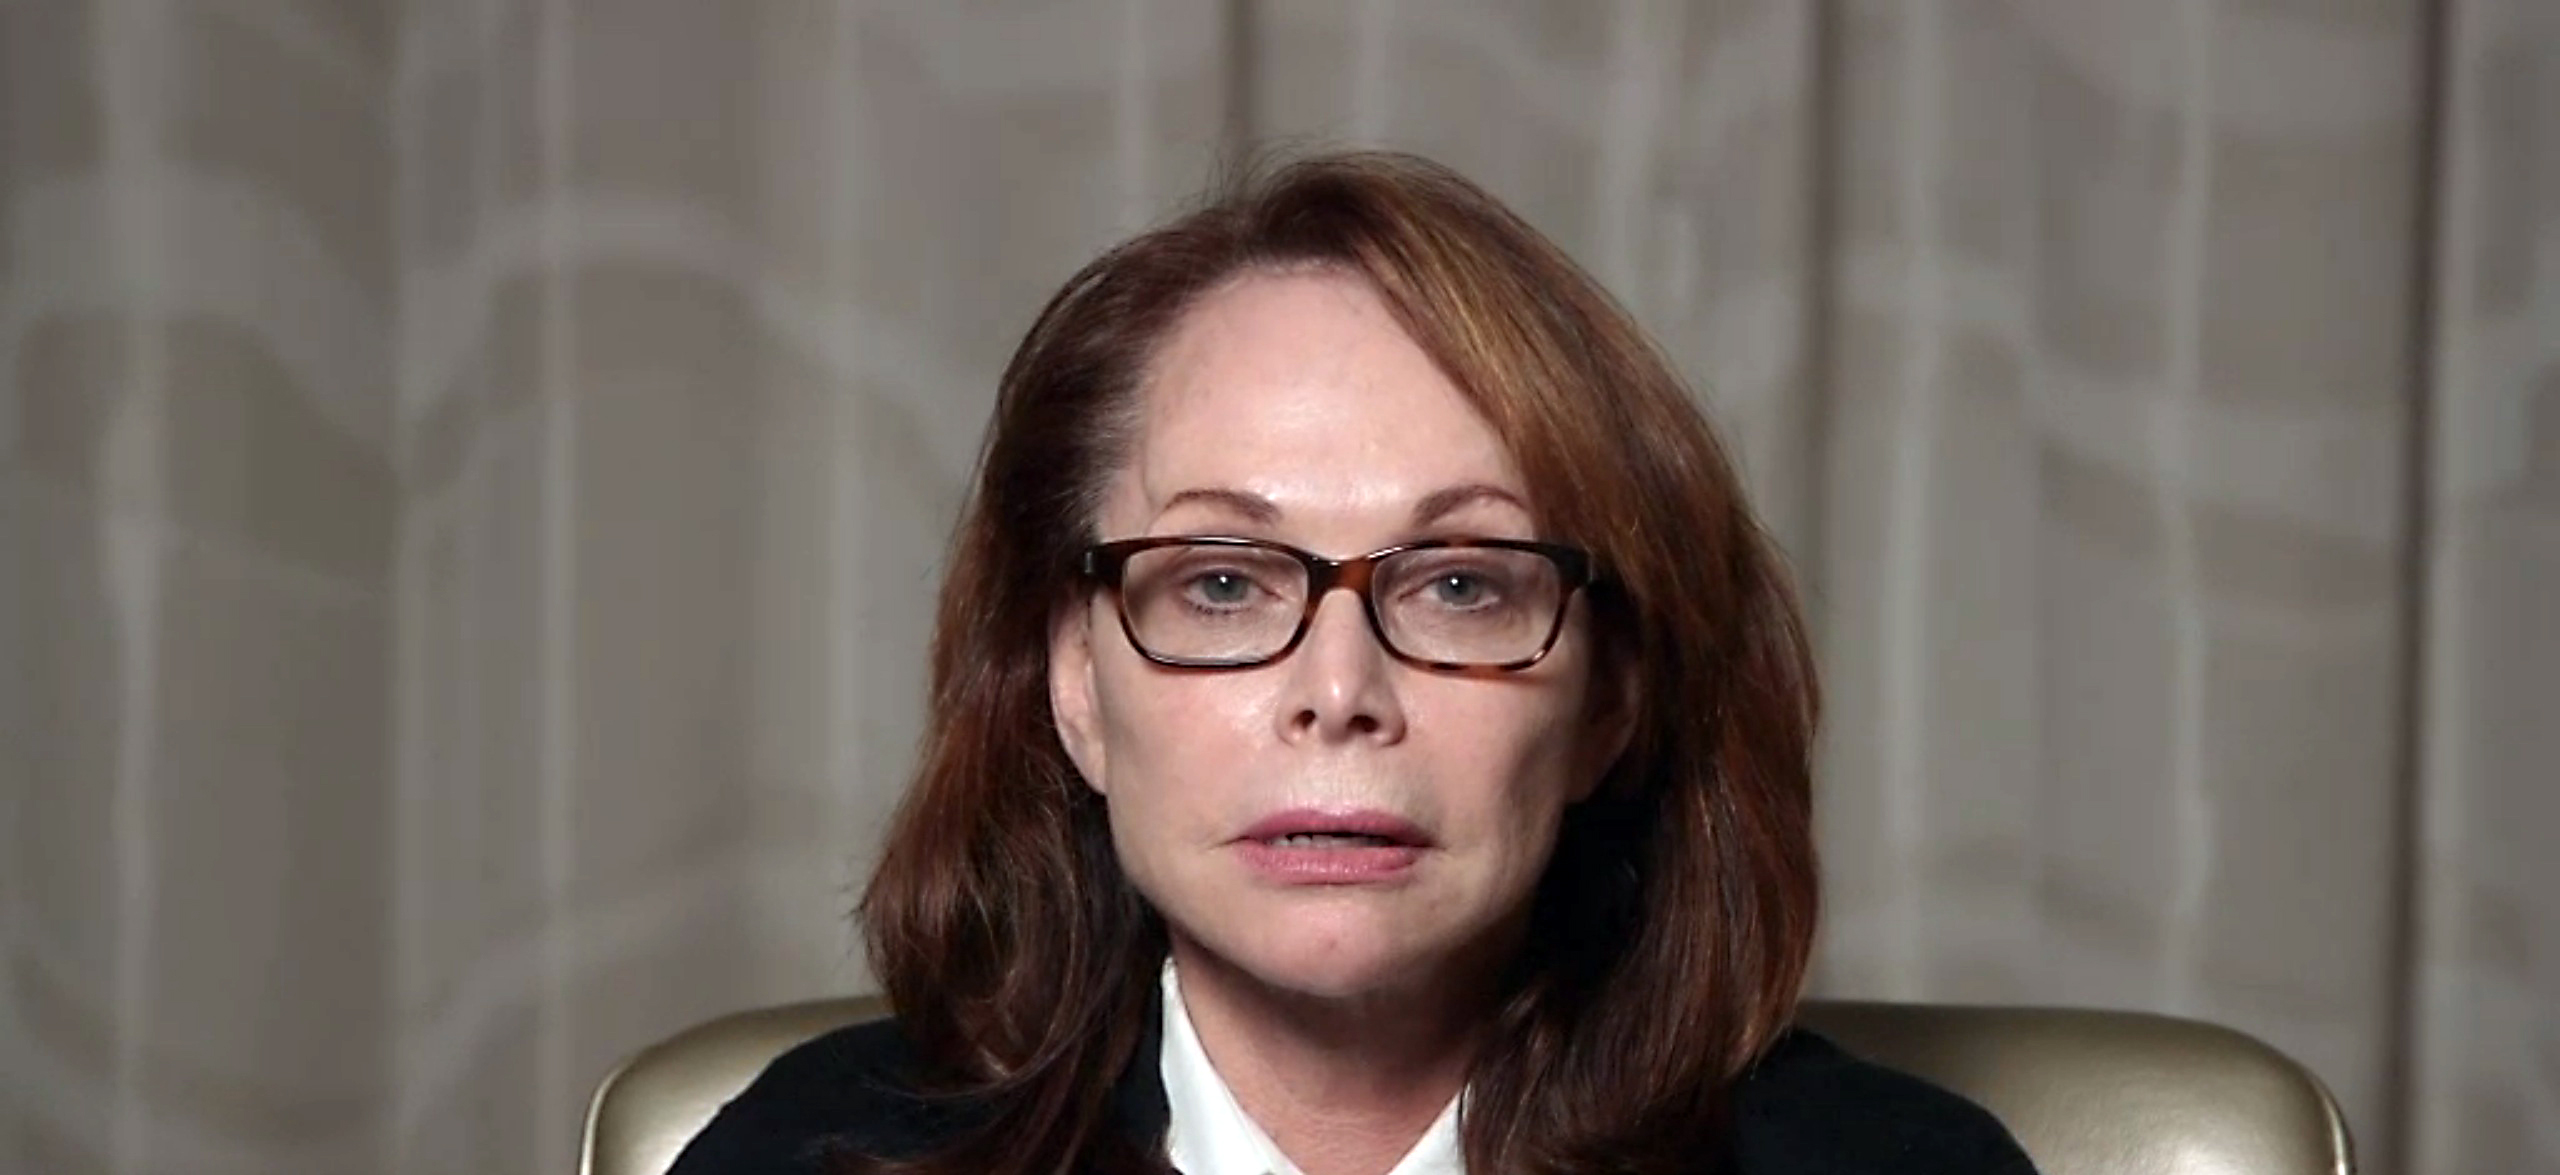 Shirley Sotloff, mother of American journalist Steven Sotloff who is being held by ISIS, pleads with her son's captors to release him in this undated video released on Aug. 27, 2014